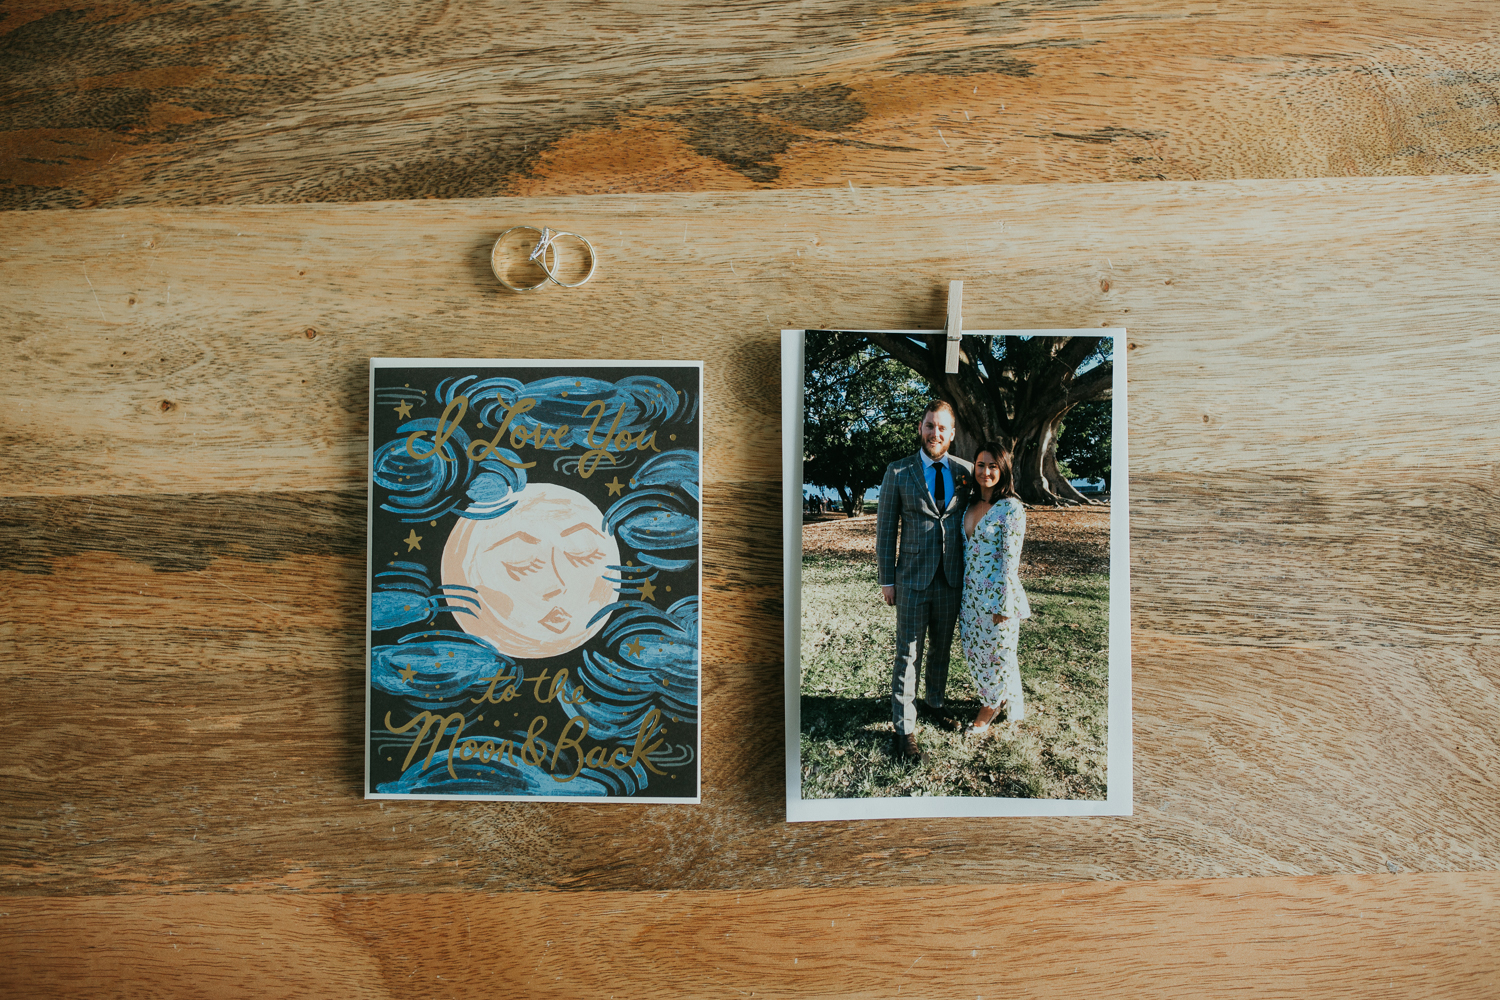 004-halcyon_house_byron_bay_wedding_photographer.jpg